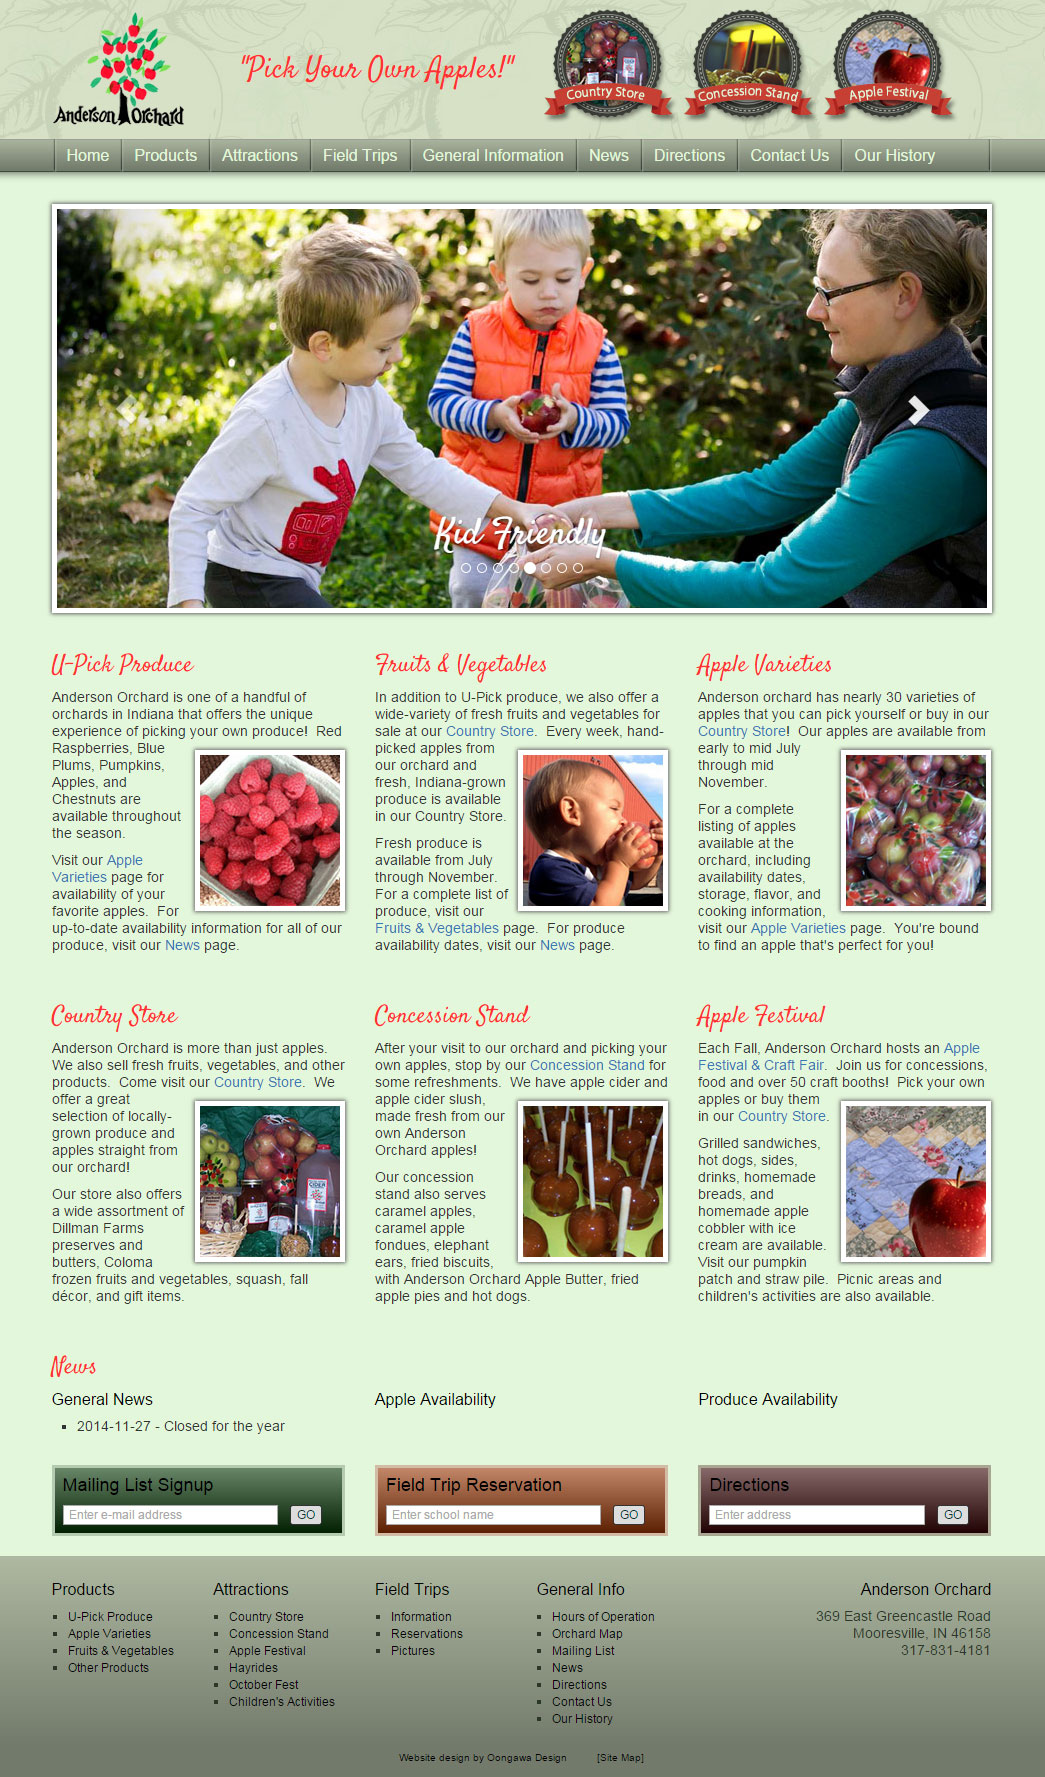 Anderson Orchard website